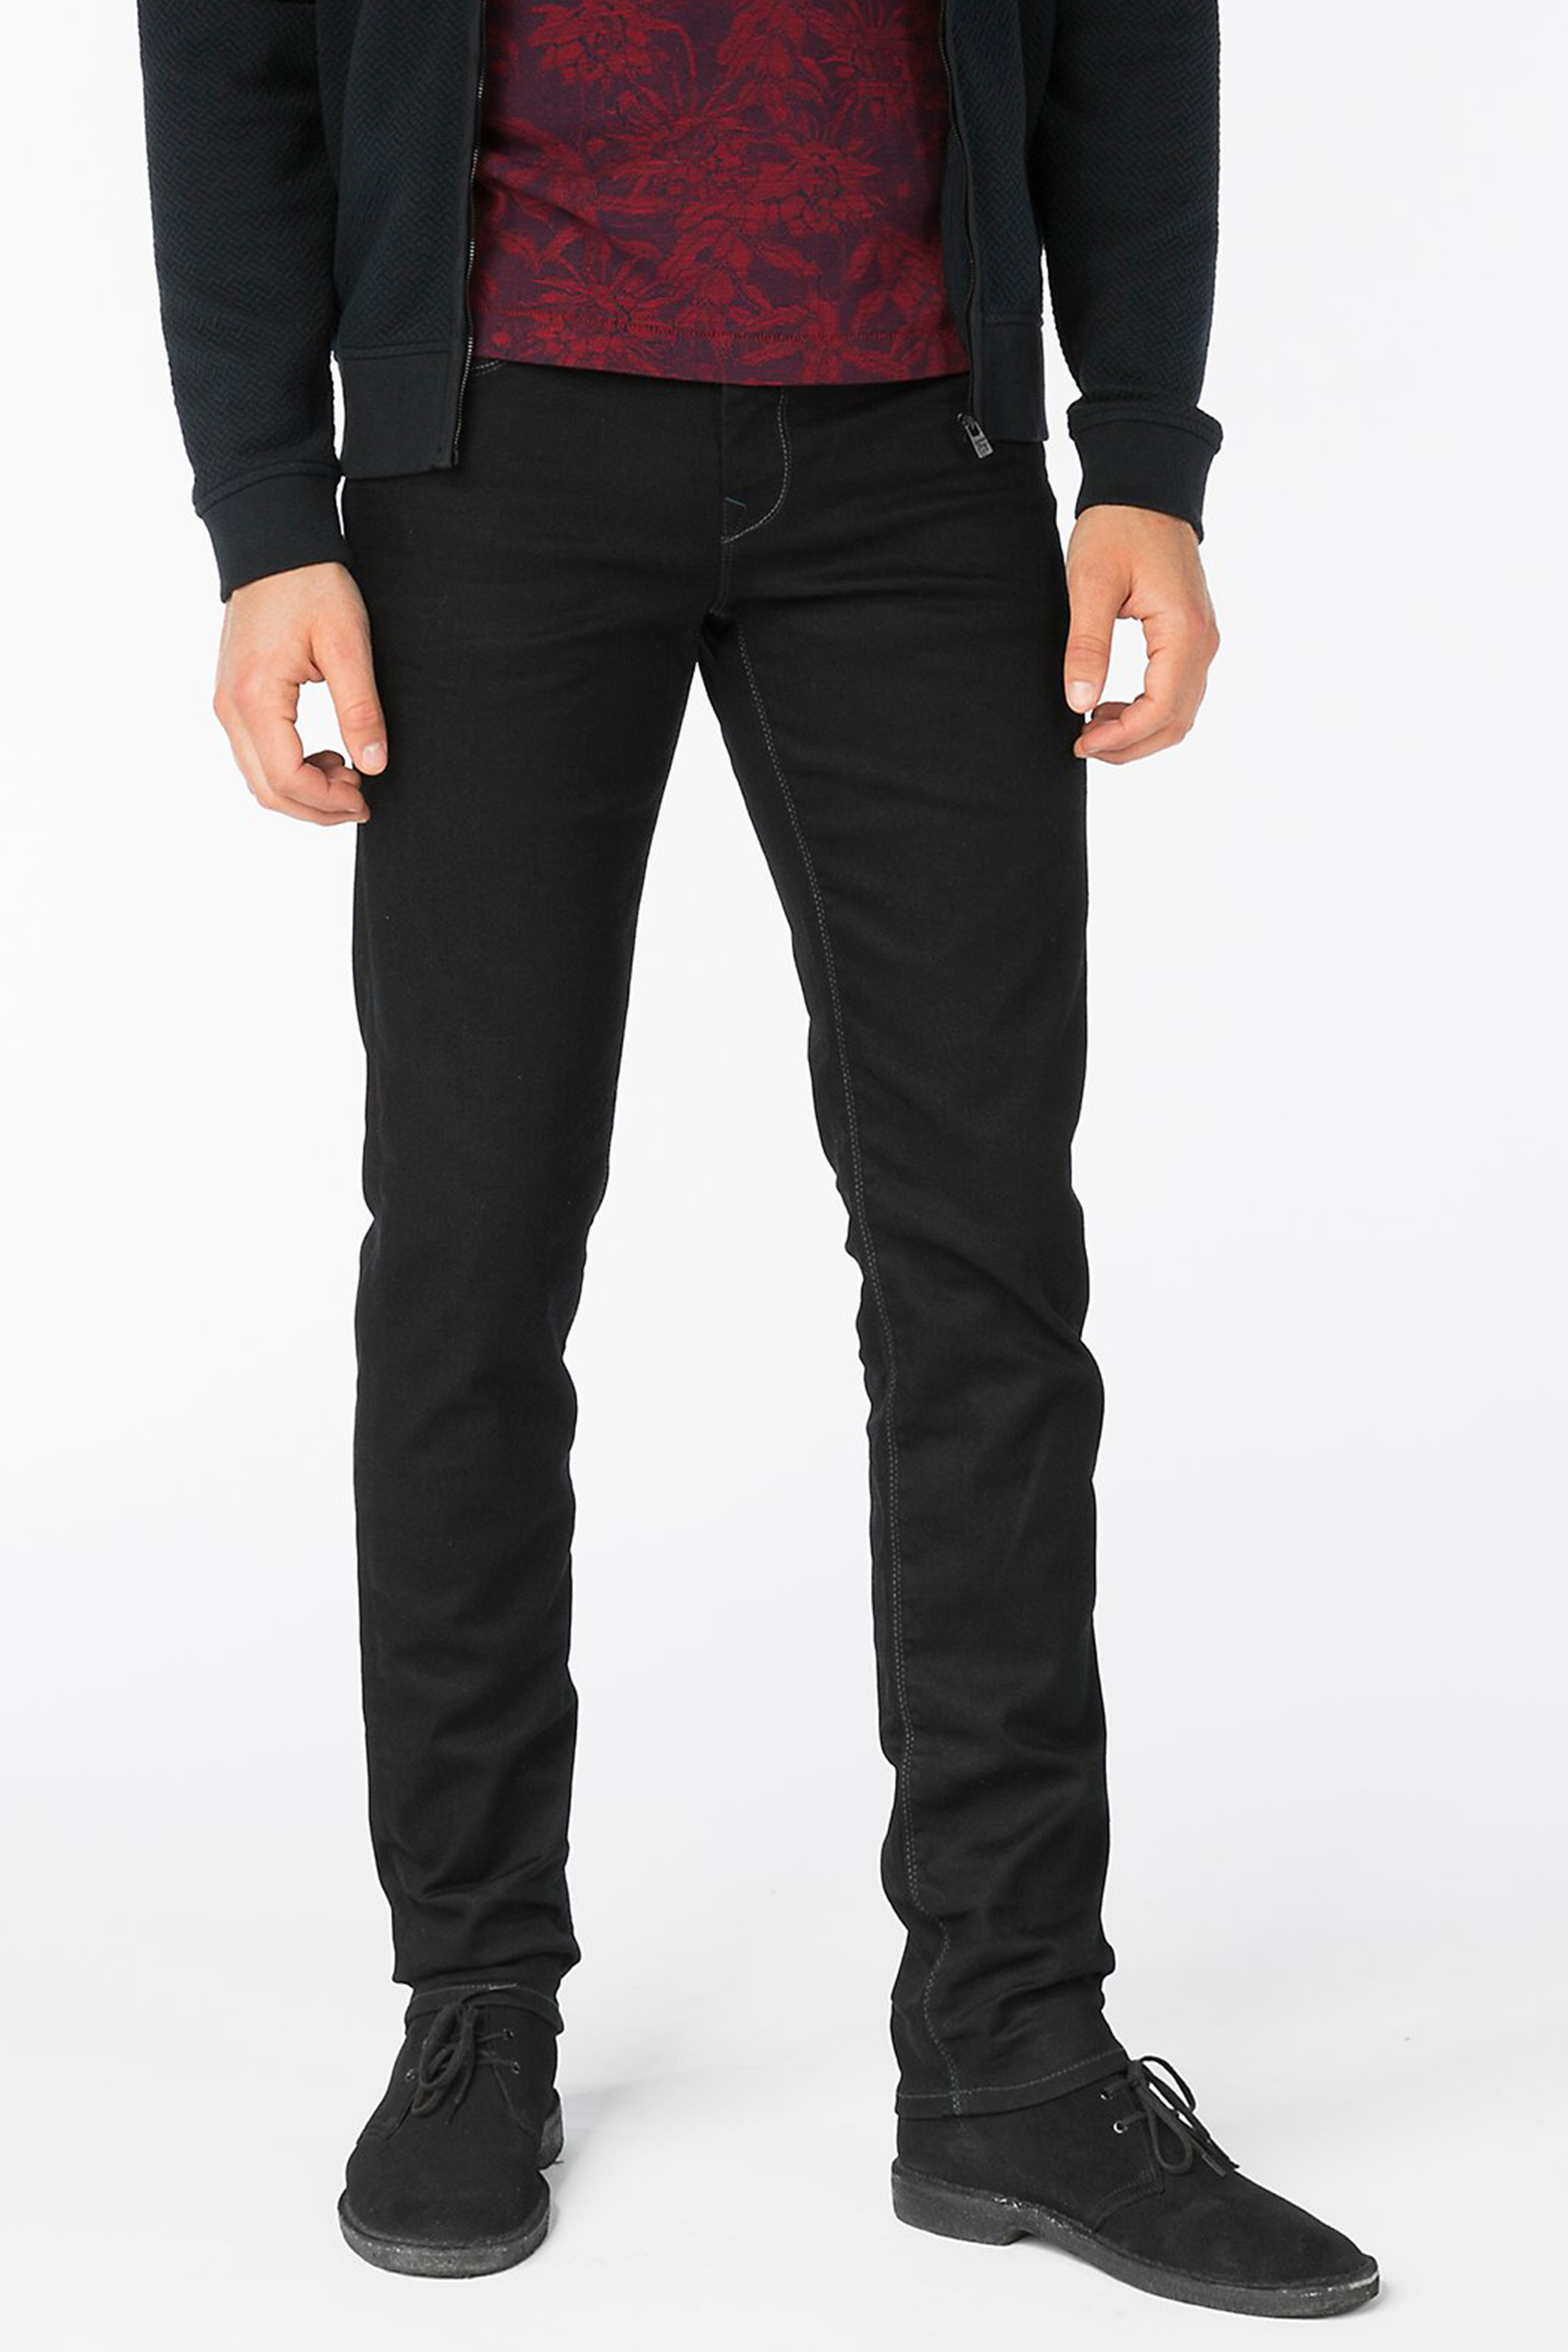 Vanguard V7 Slim Jeans Stretch DCD foto 5